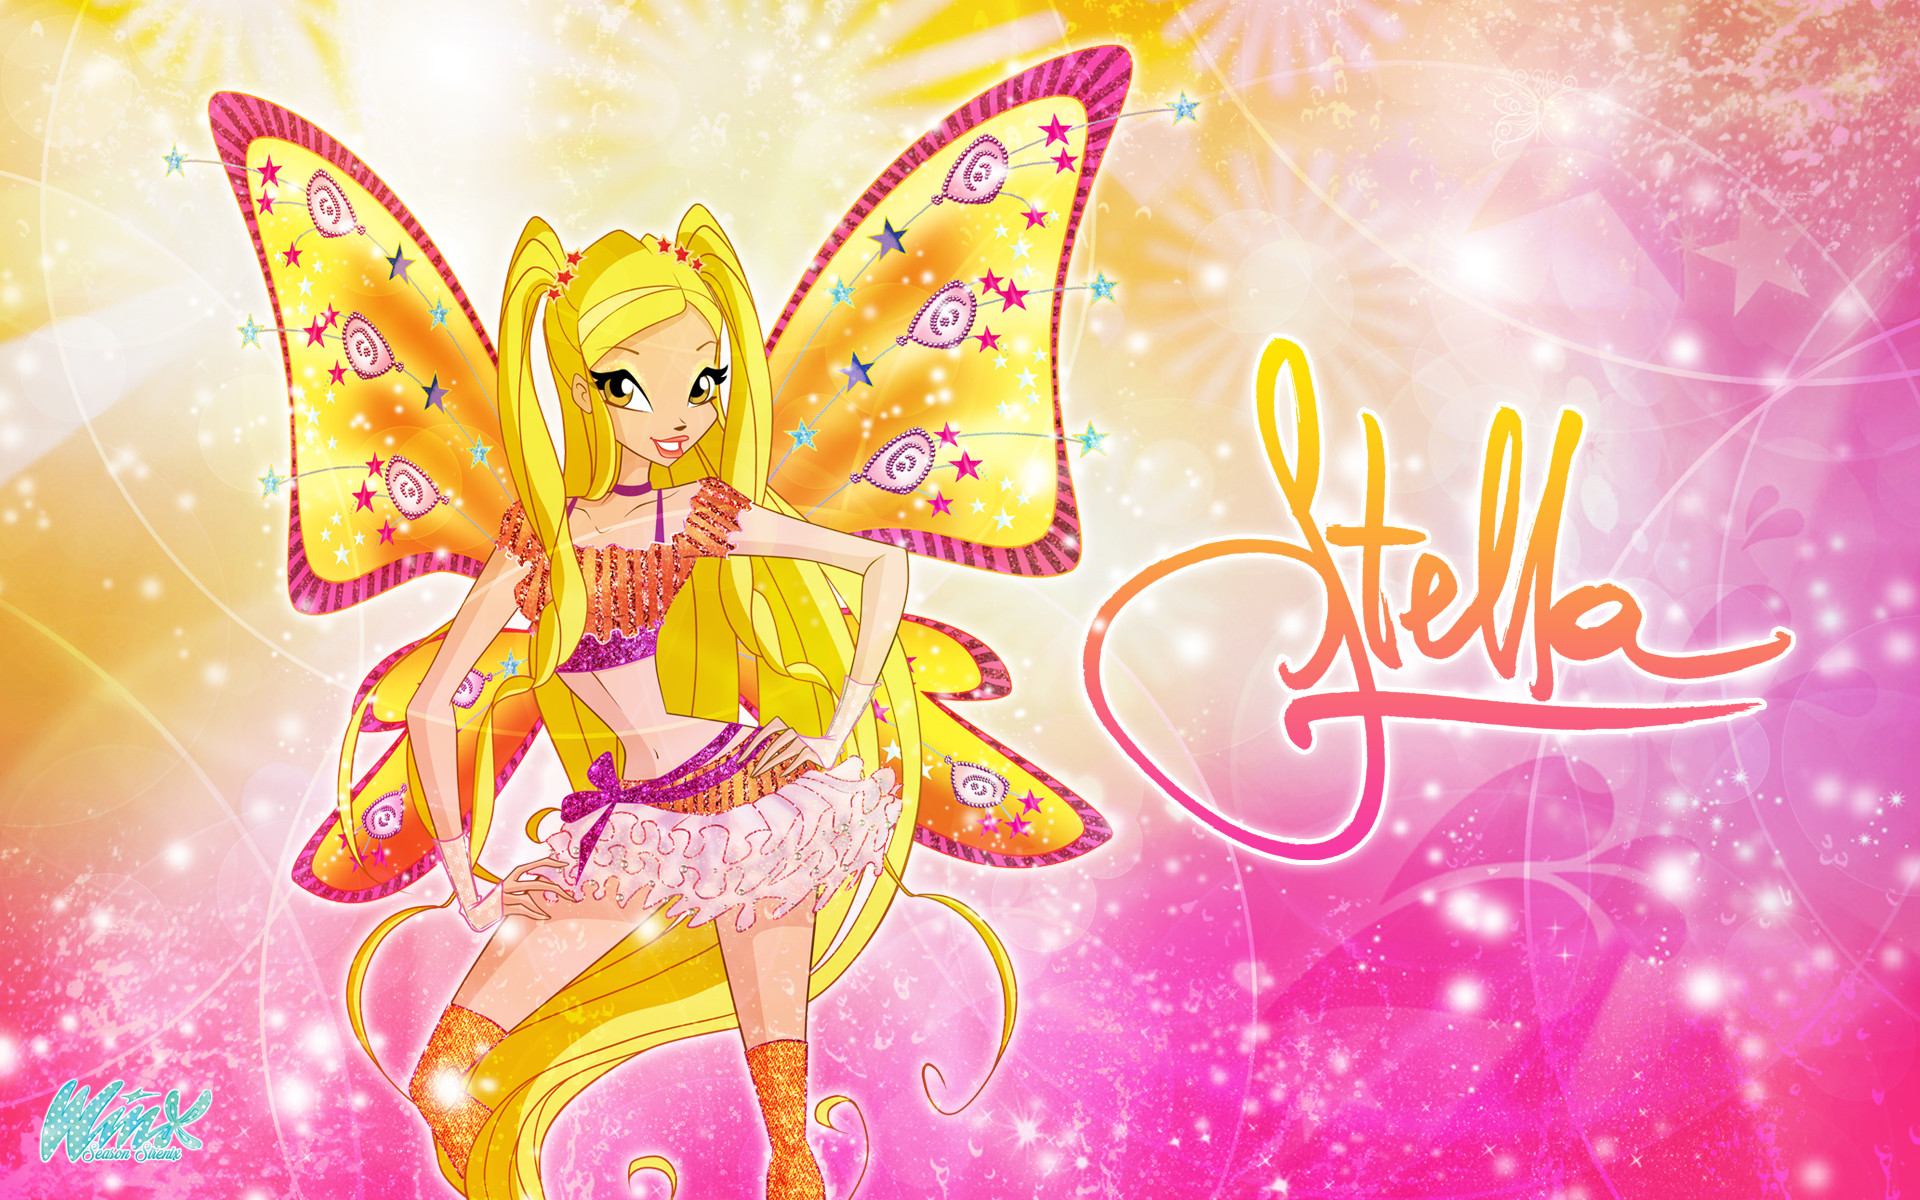 Winx Club Wallpapers (71+ images)